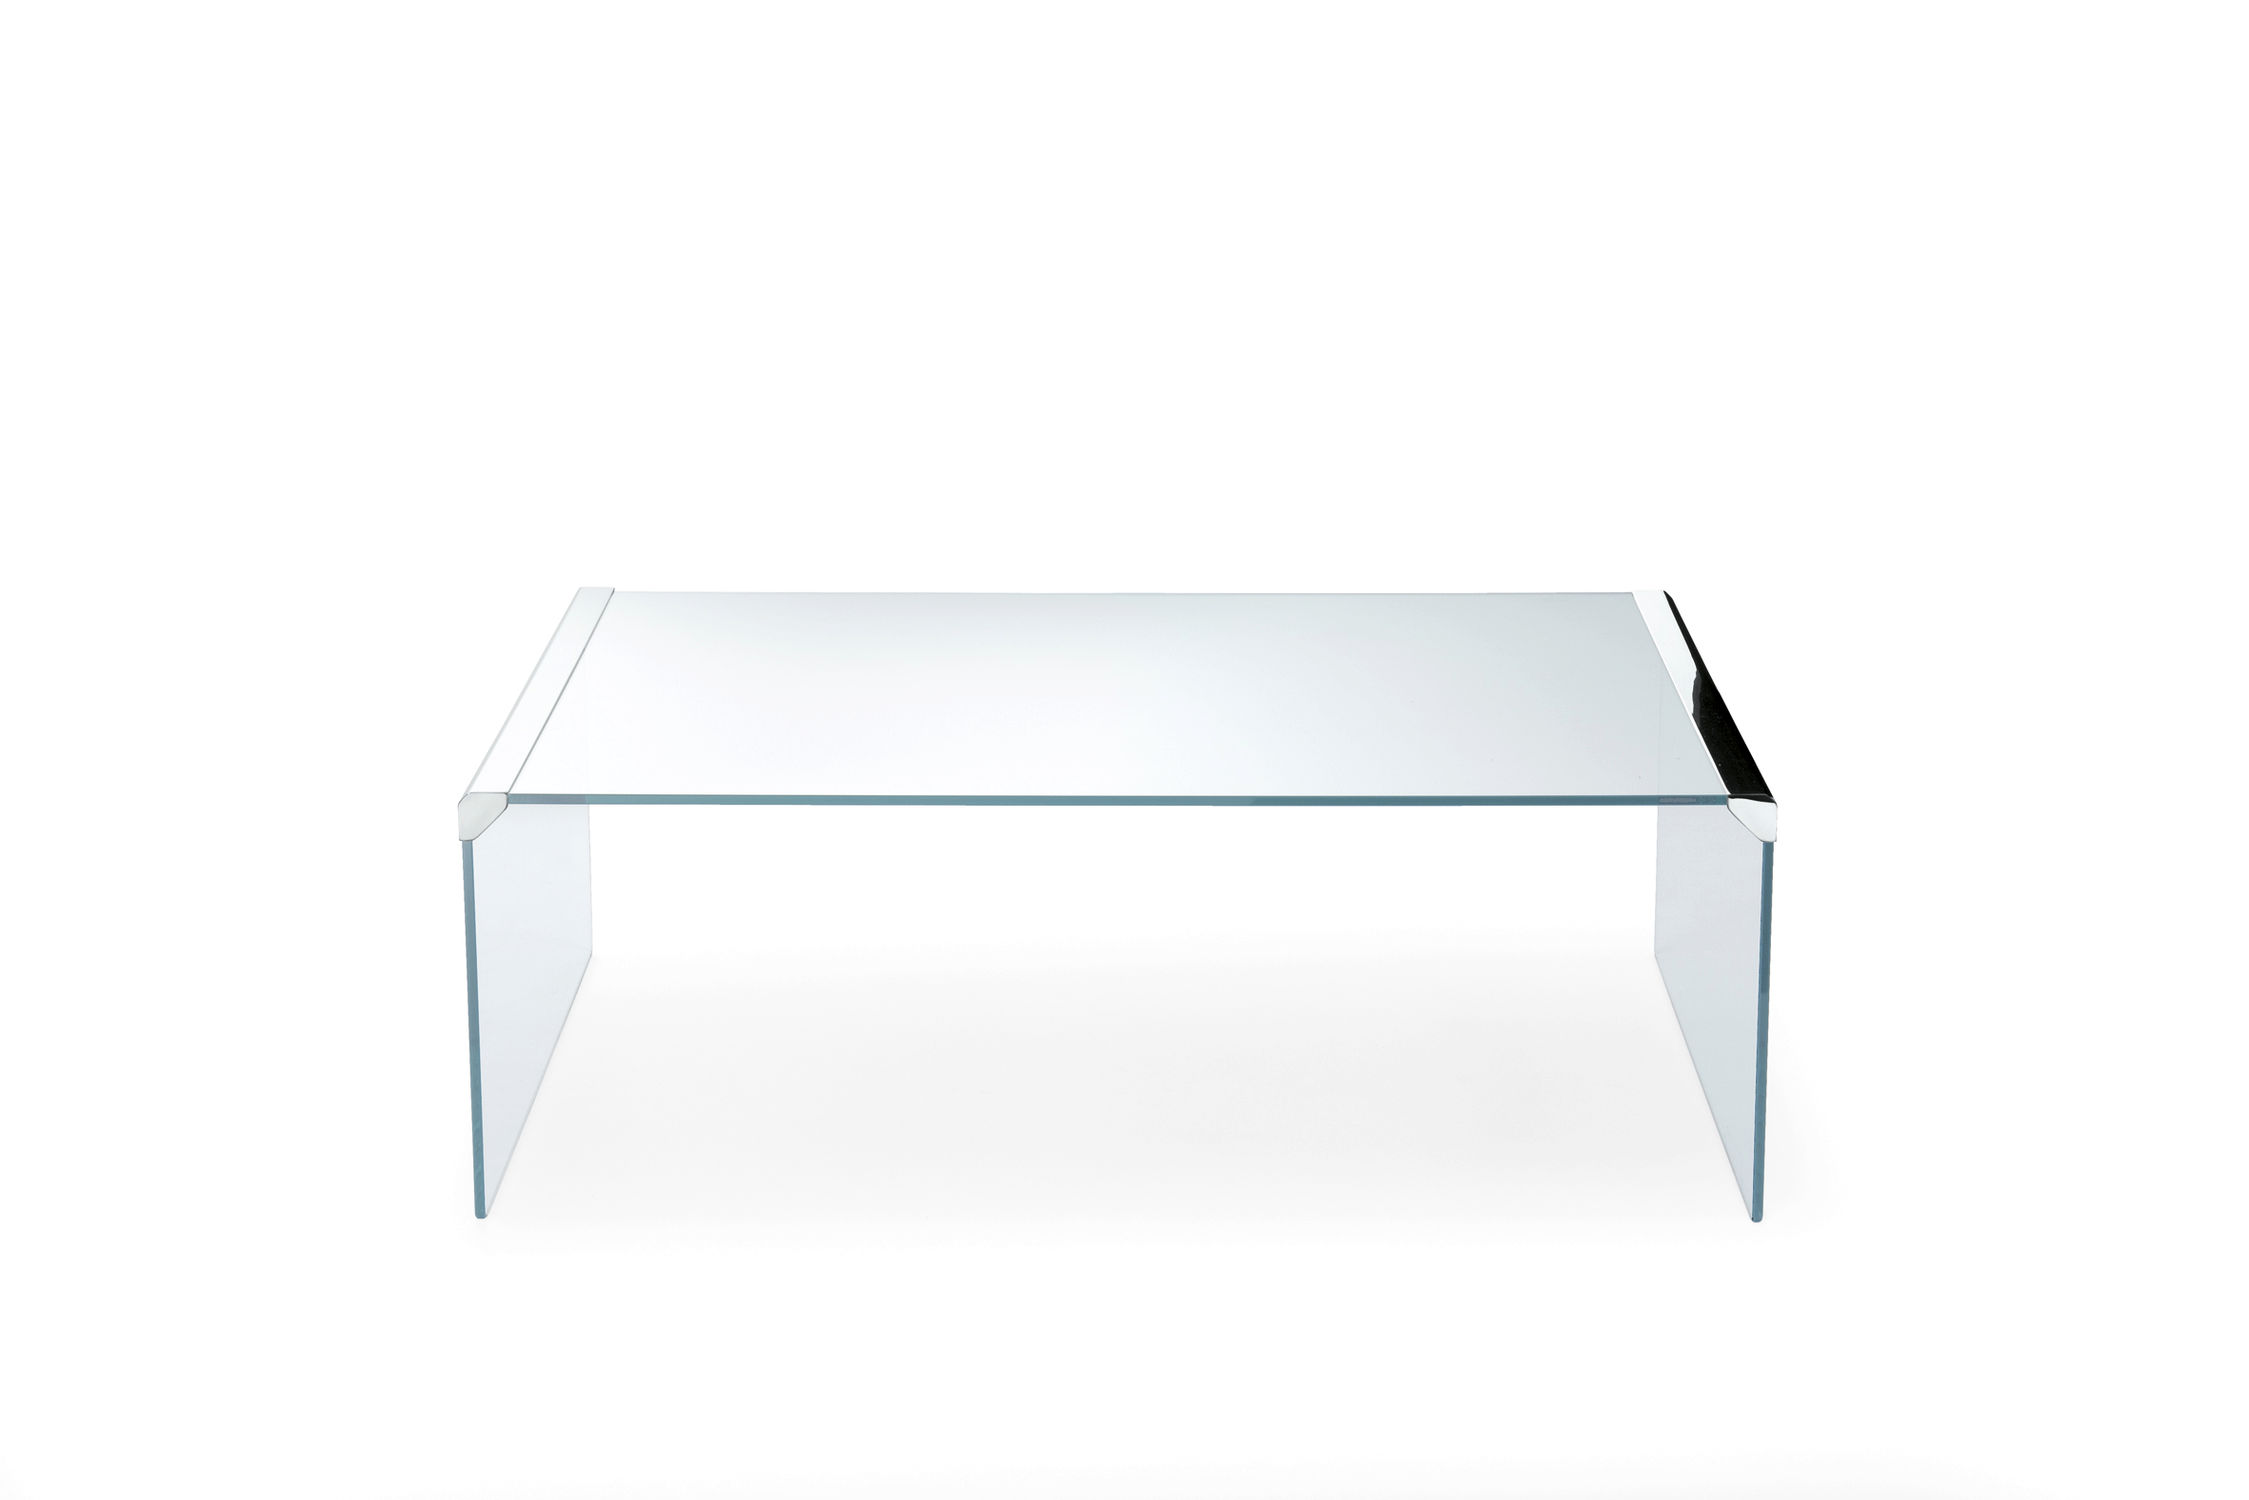 Contemporary Coffee Table / Glass / Tempered Glass / Stainless Steel   T 33  By Pierangelo Gallotti